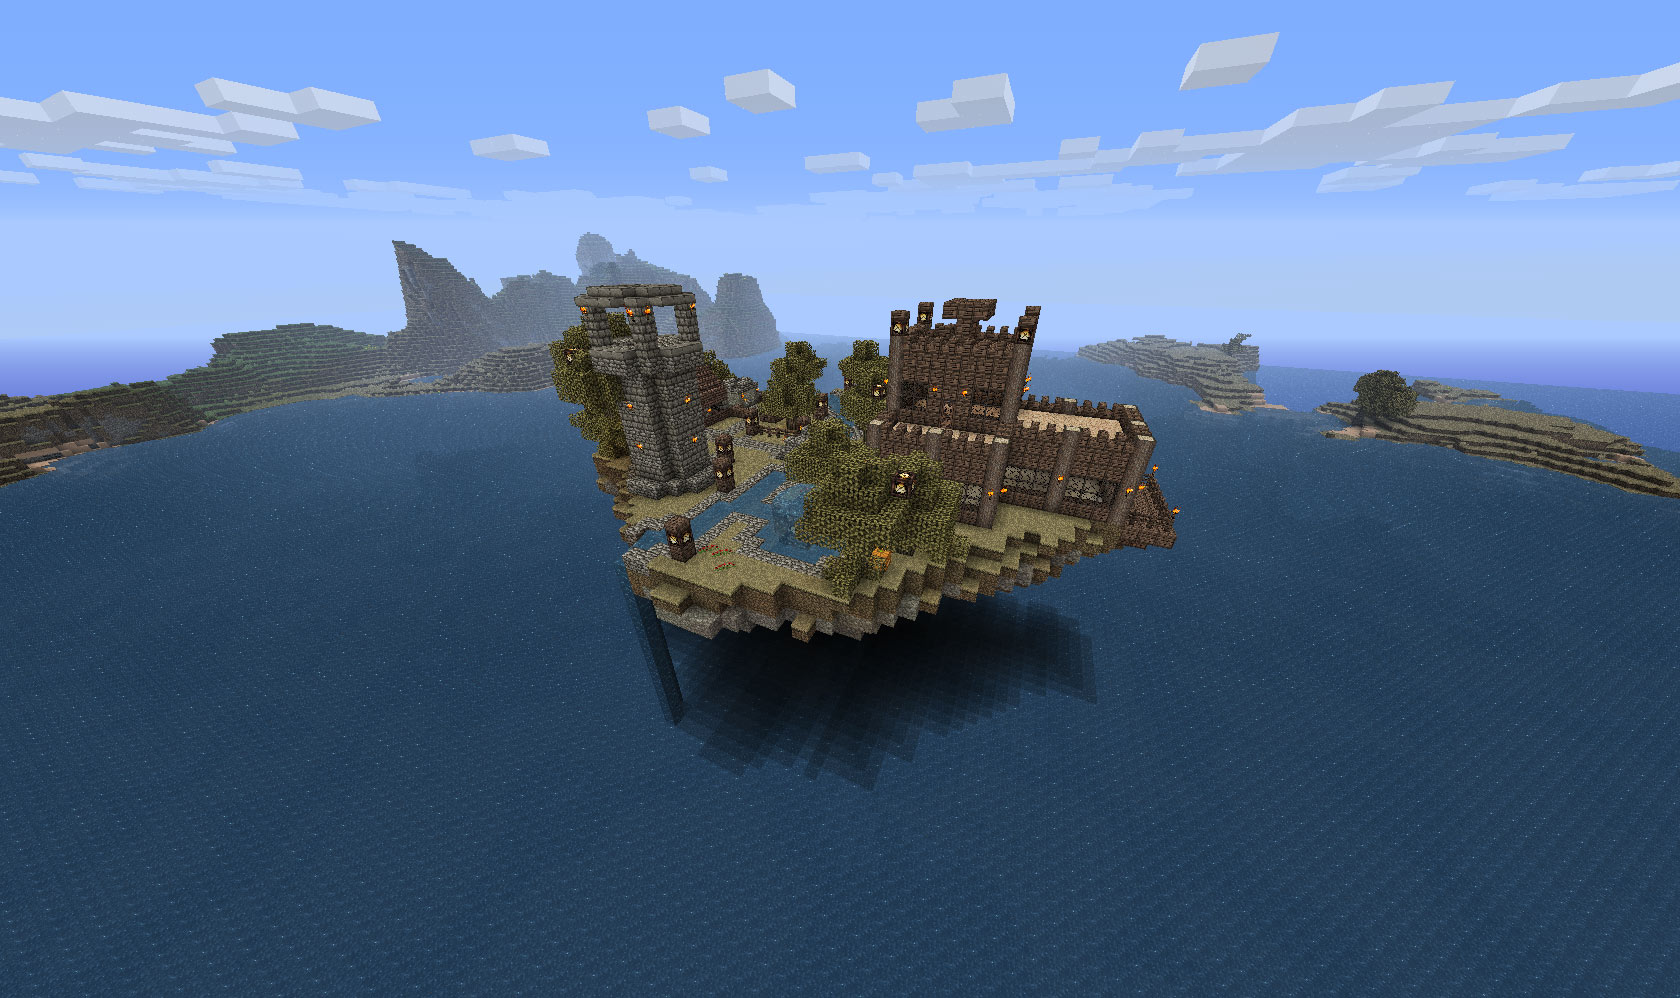 Minecraft Floating Island And Buildings H3xed